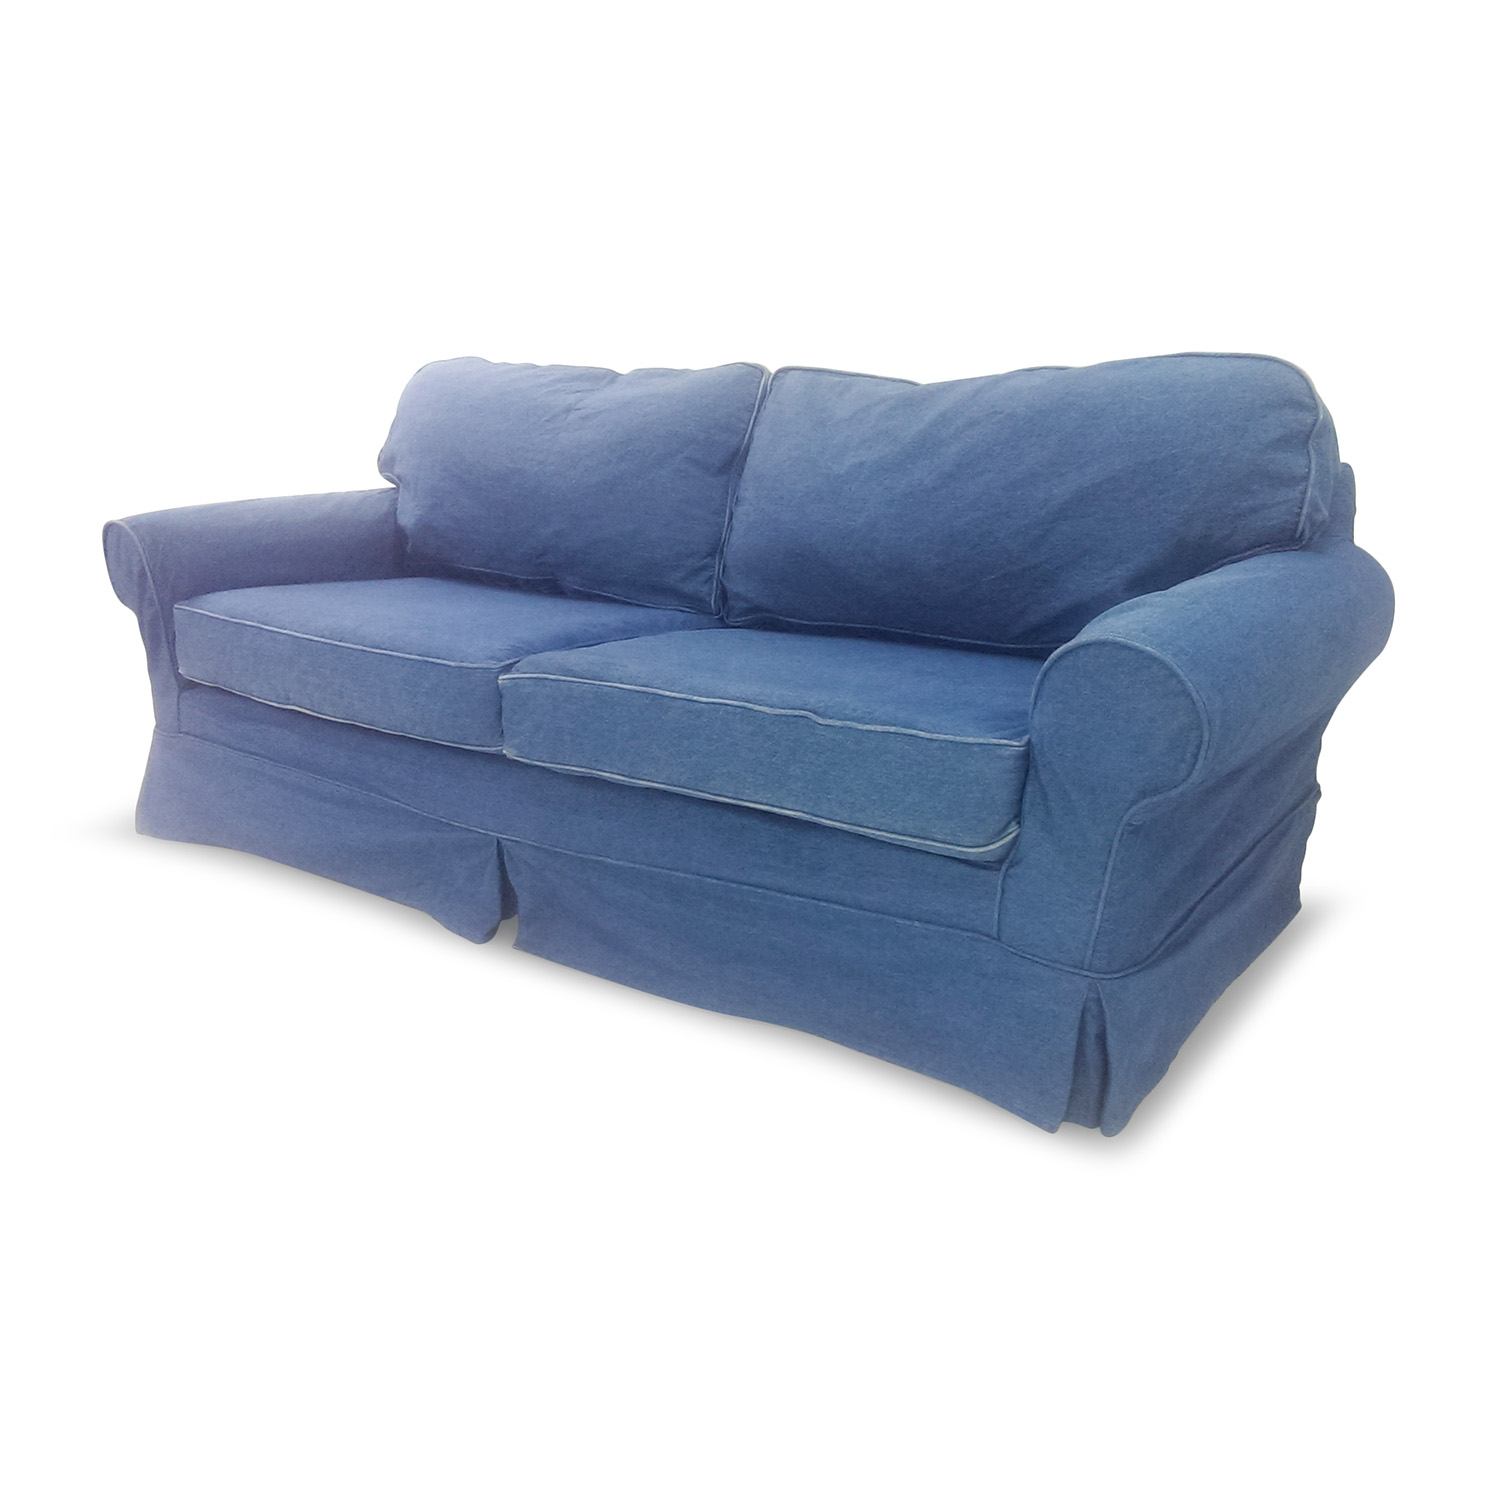 ... Blue Denim Couch Price